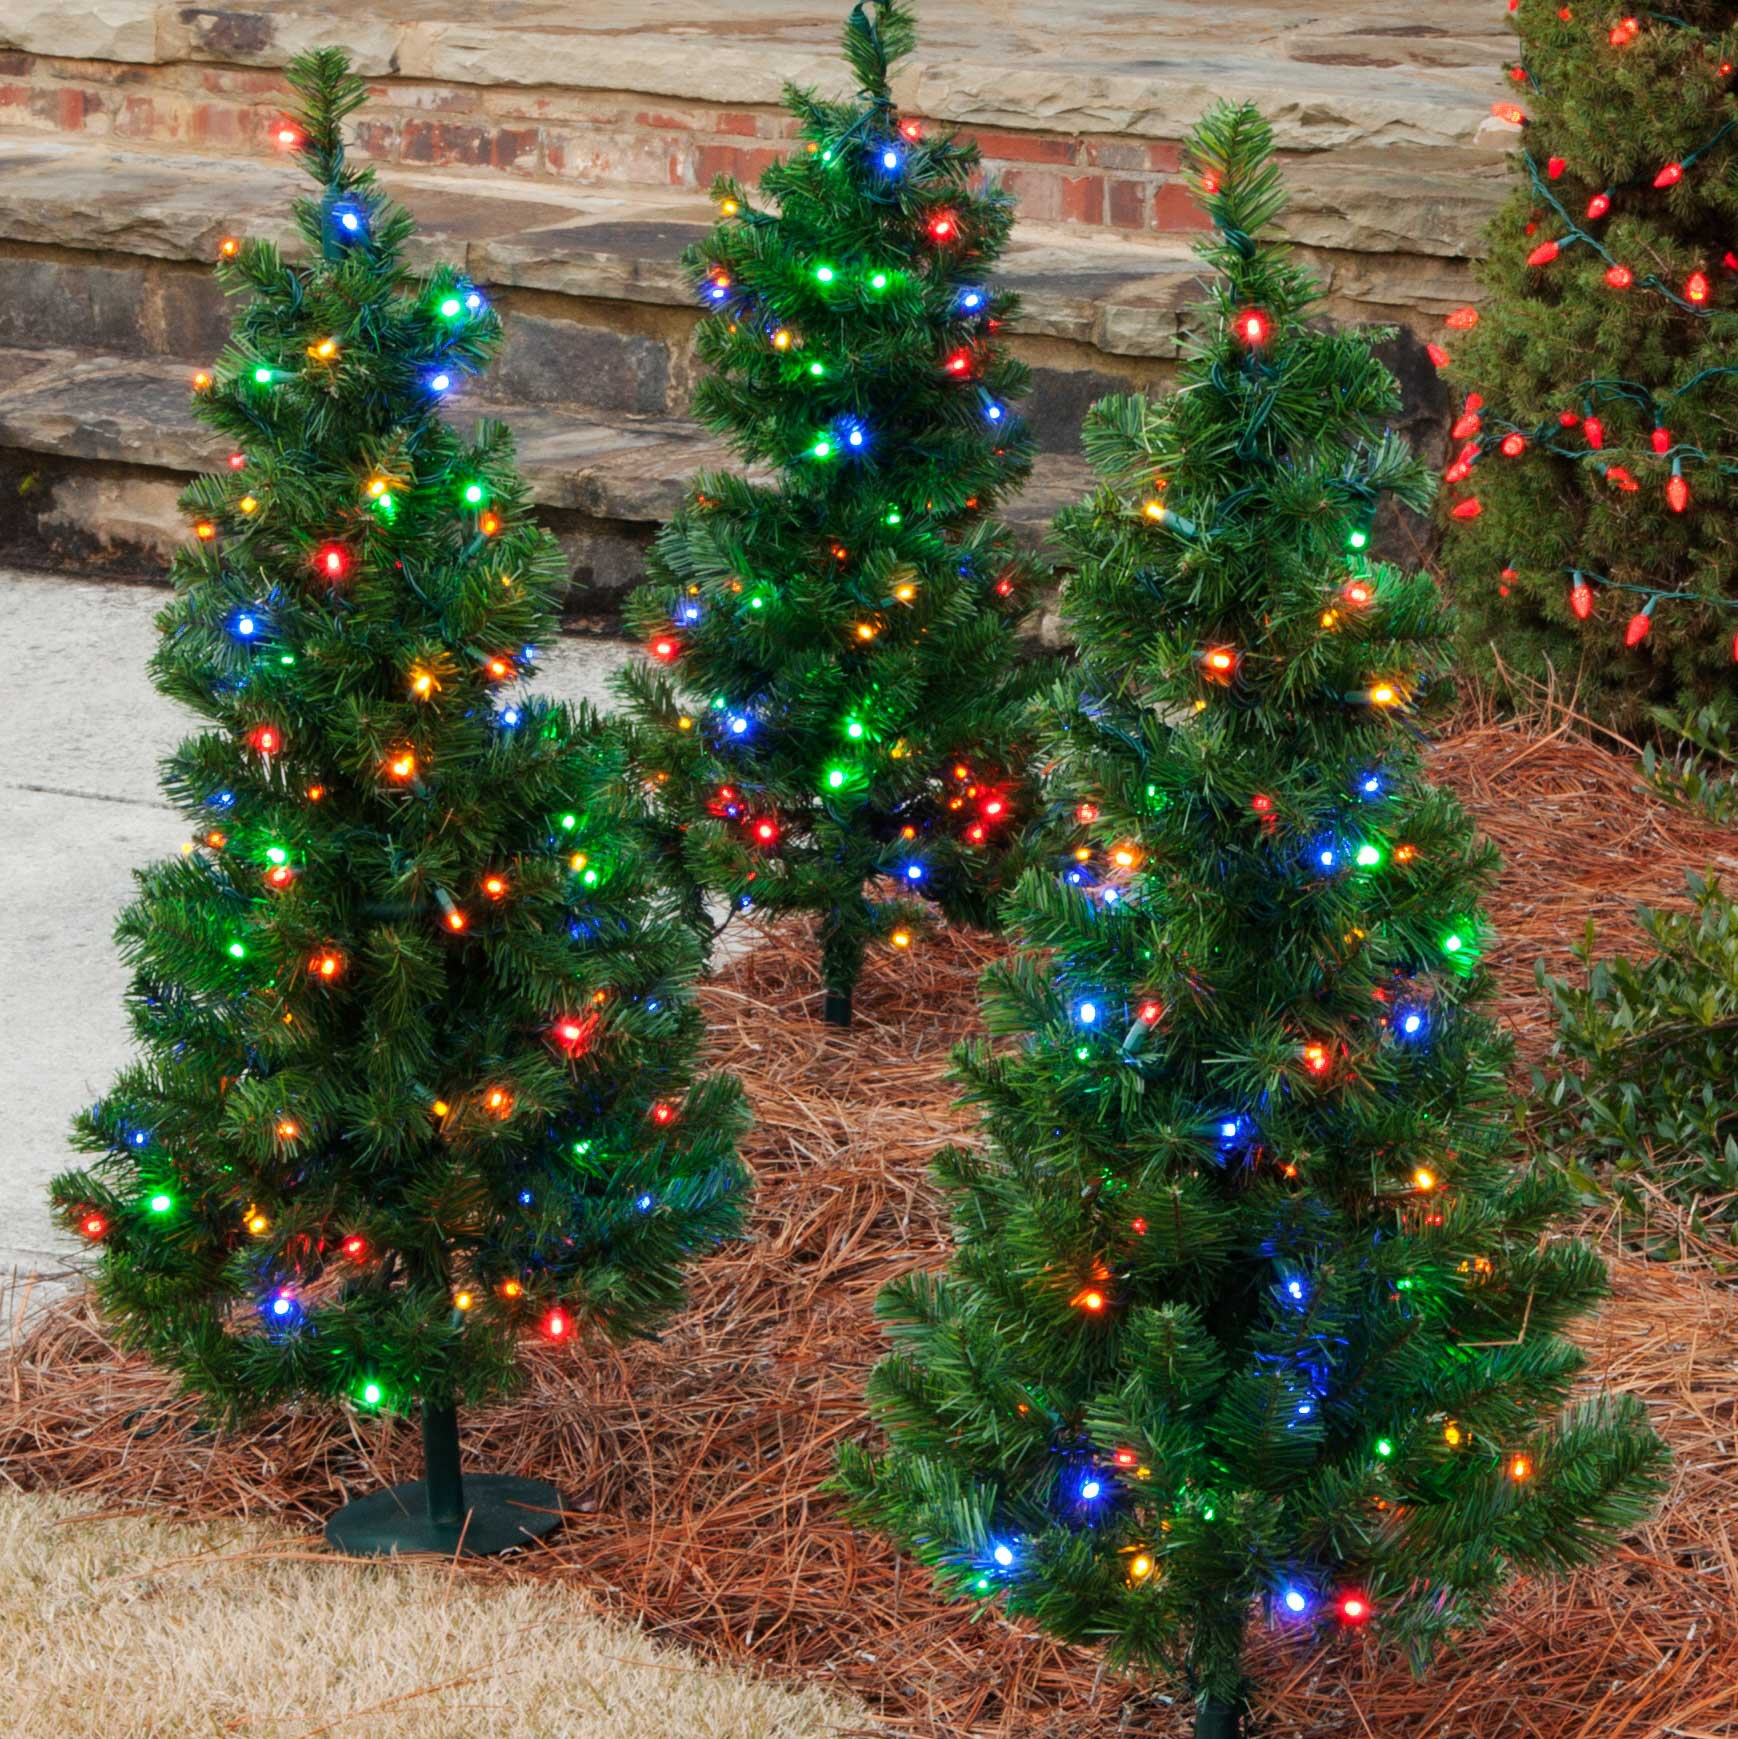 outdoor decorations 3 walkway pre lit winchester fir tree 100 multicolored led lamps